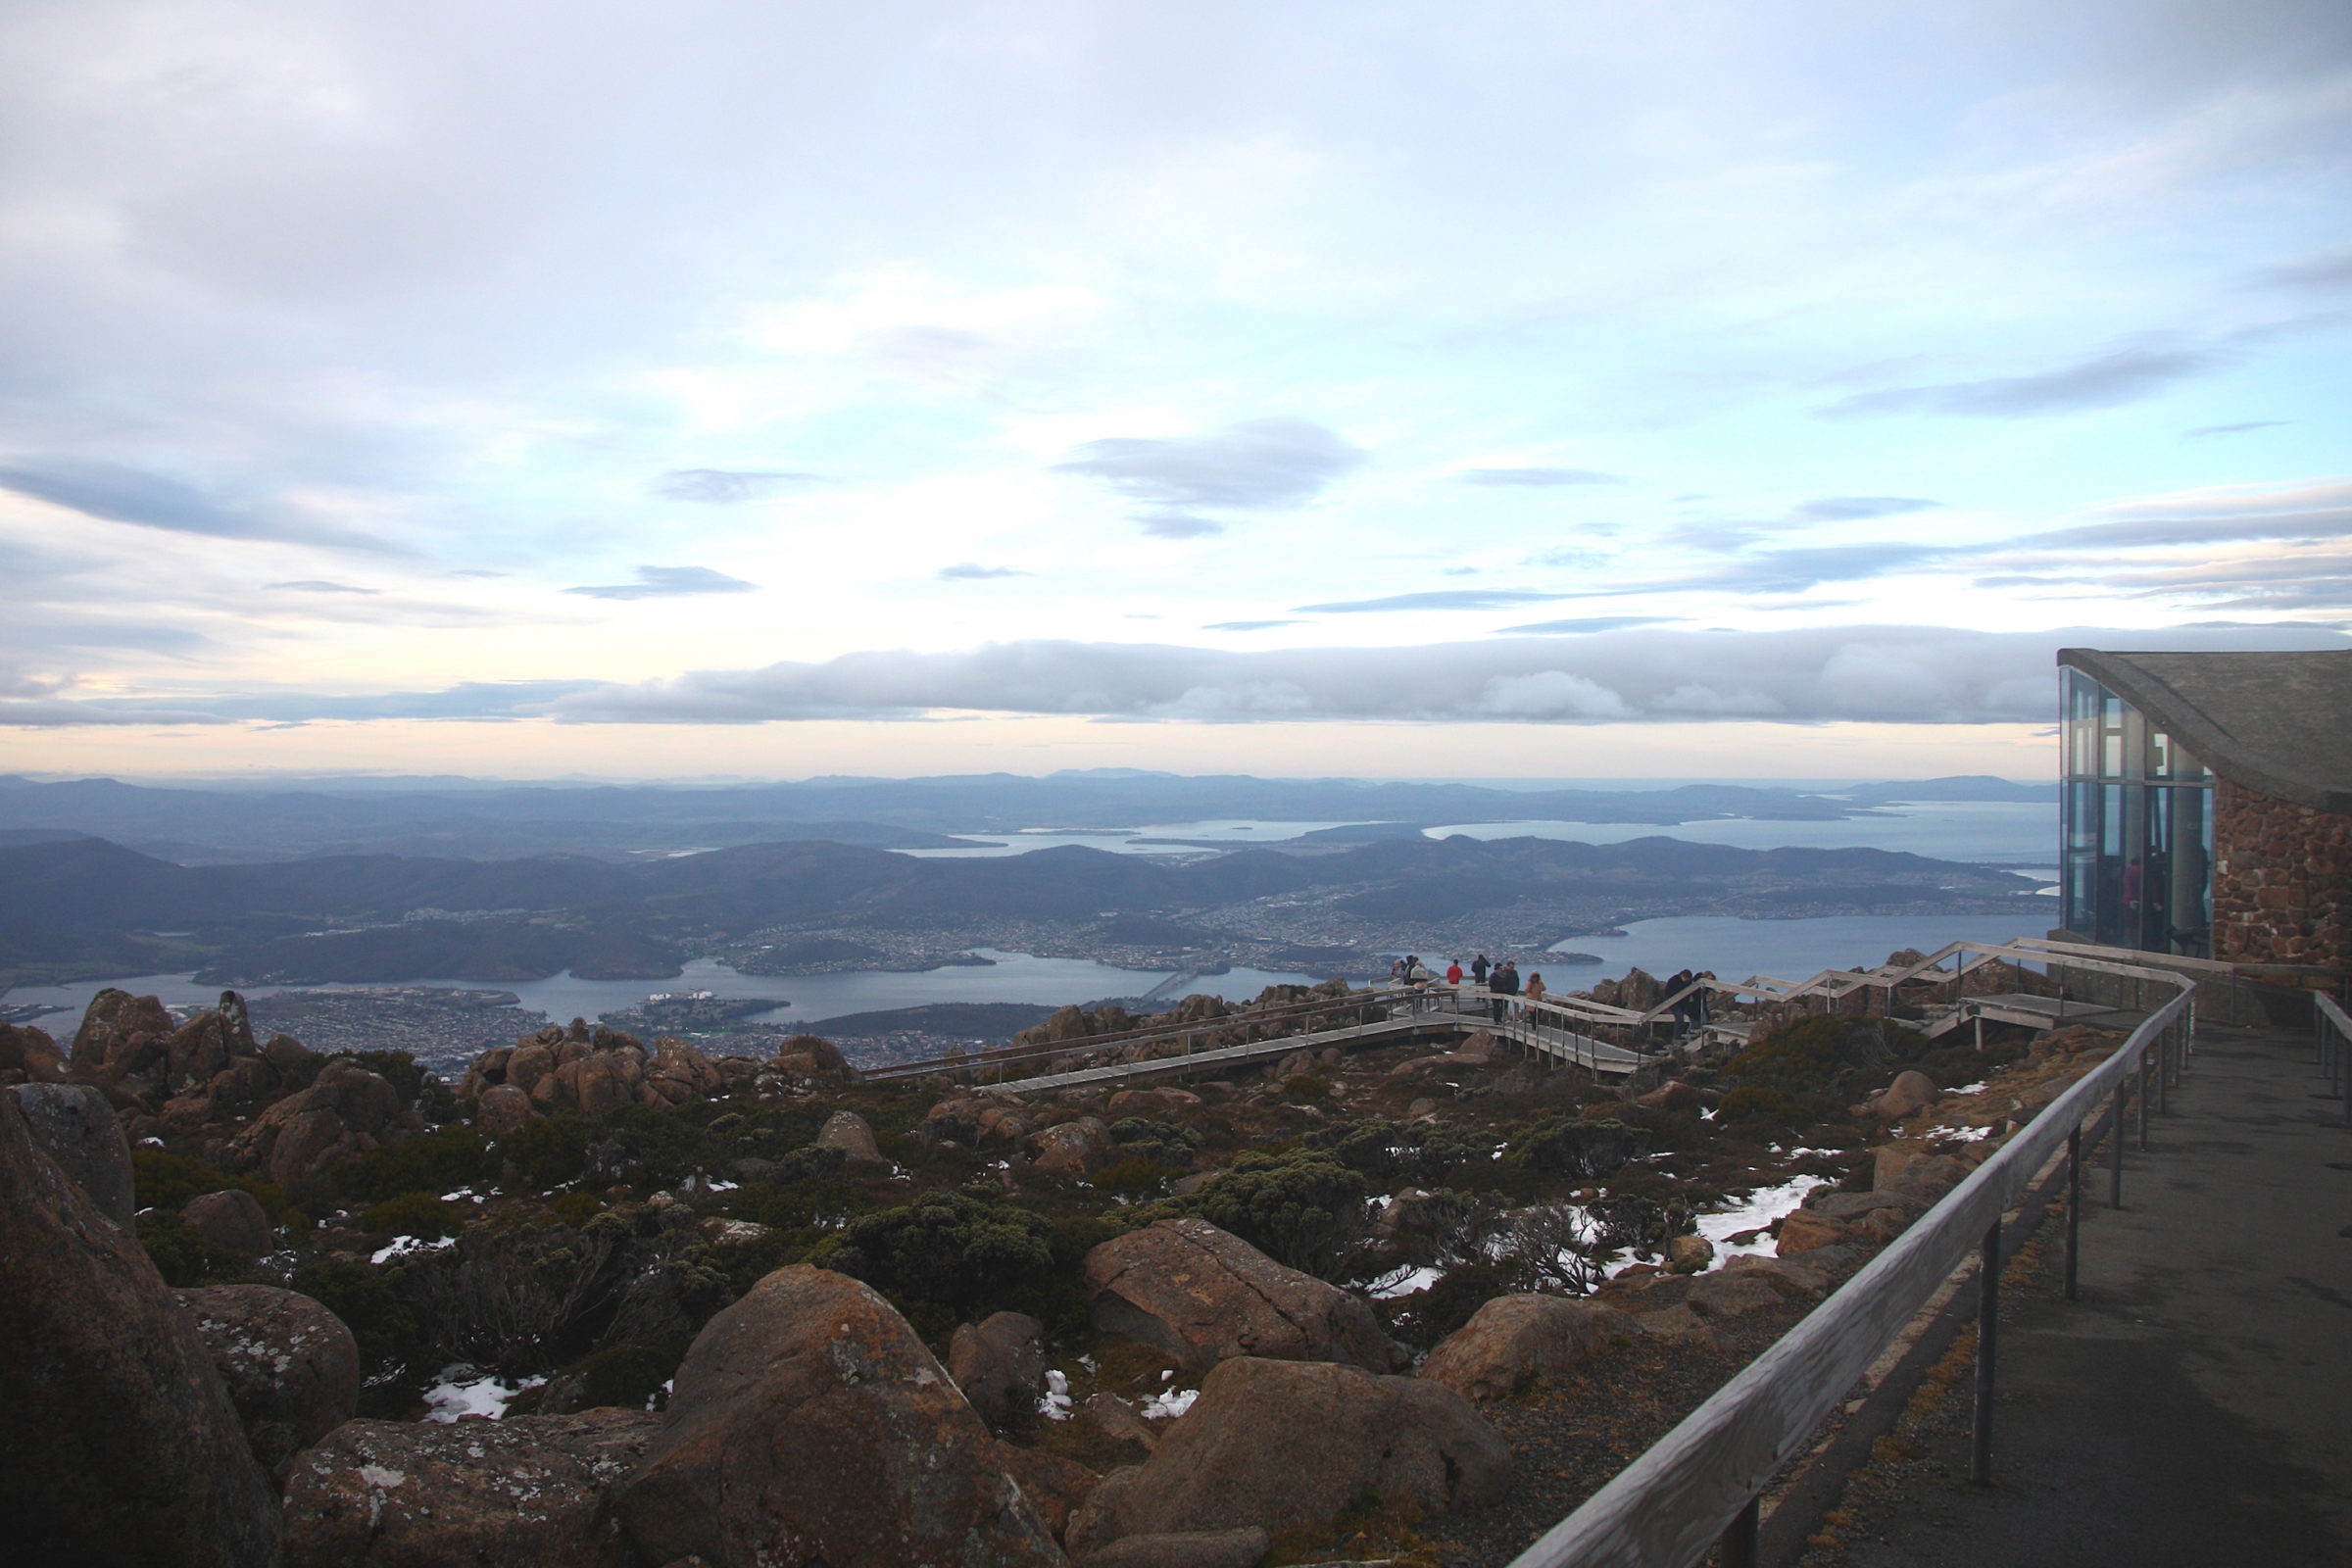 Tasmania Road Trip Itinerary, Day 1: Hobart and Mount Wellington